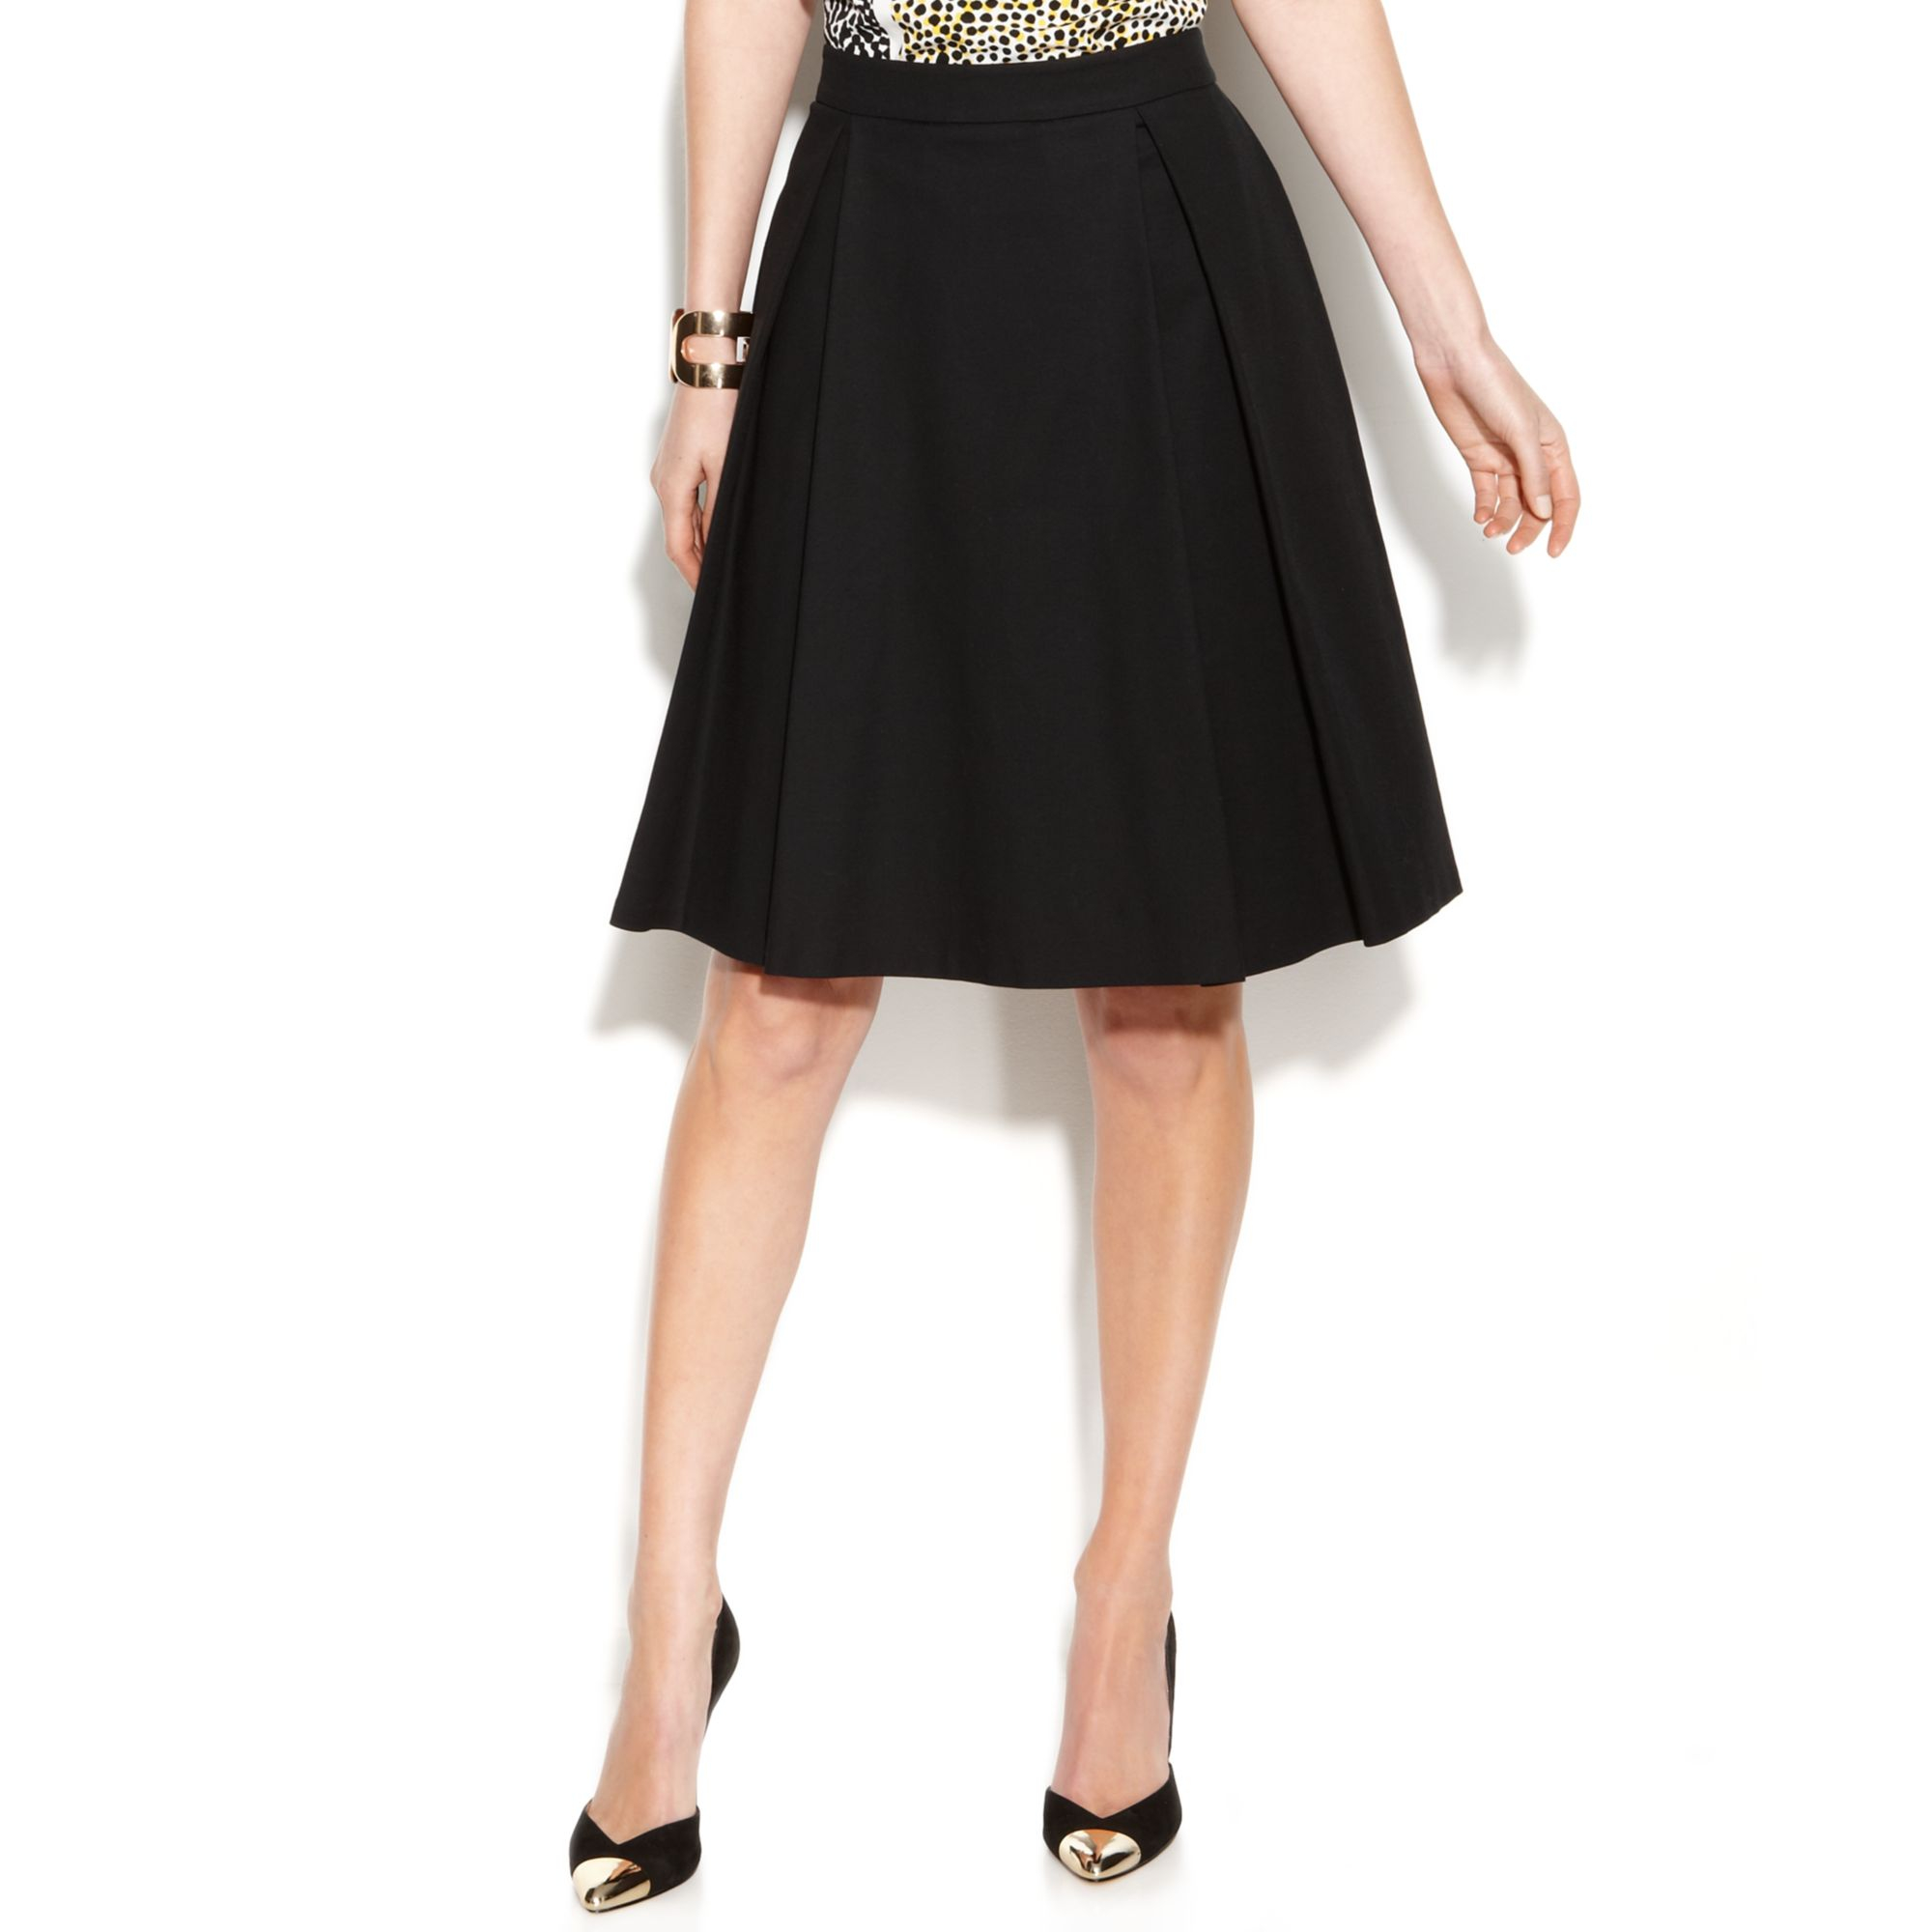 f18d5187f5 Vince Camuto Pleated A-line Skirt in Black - Lyst